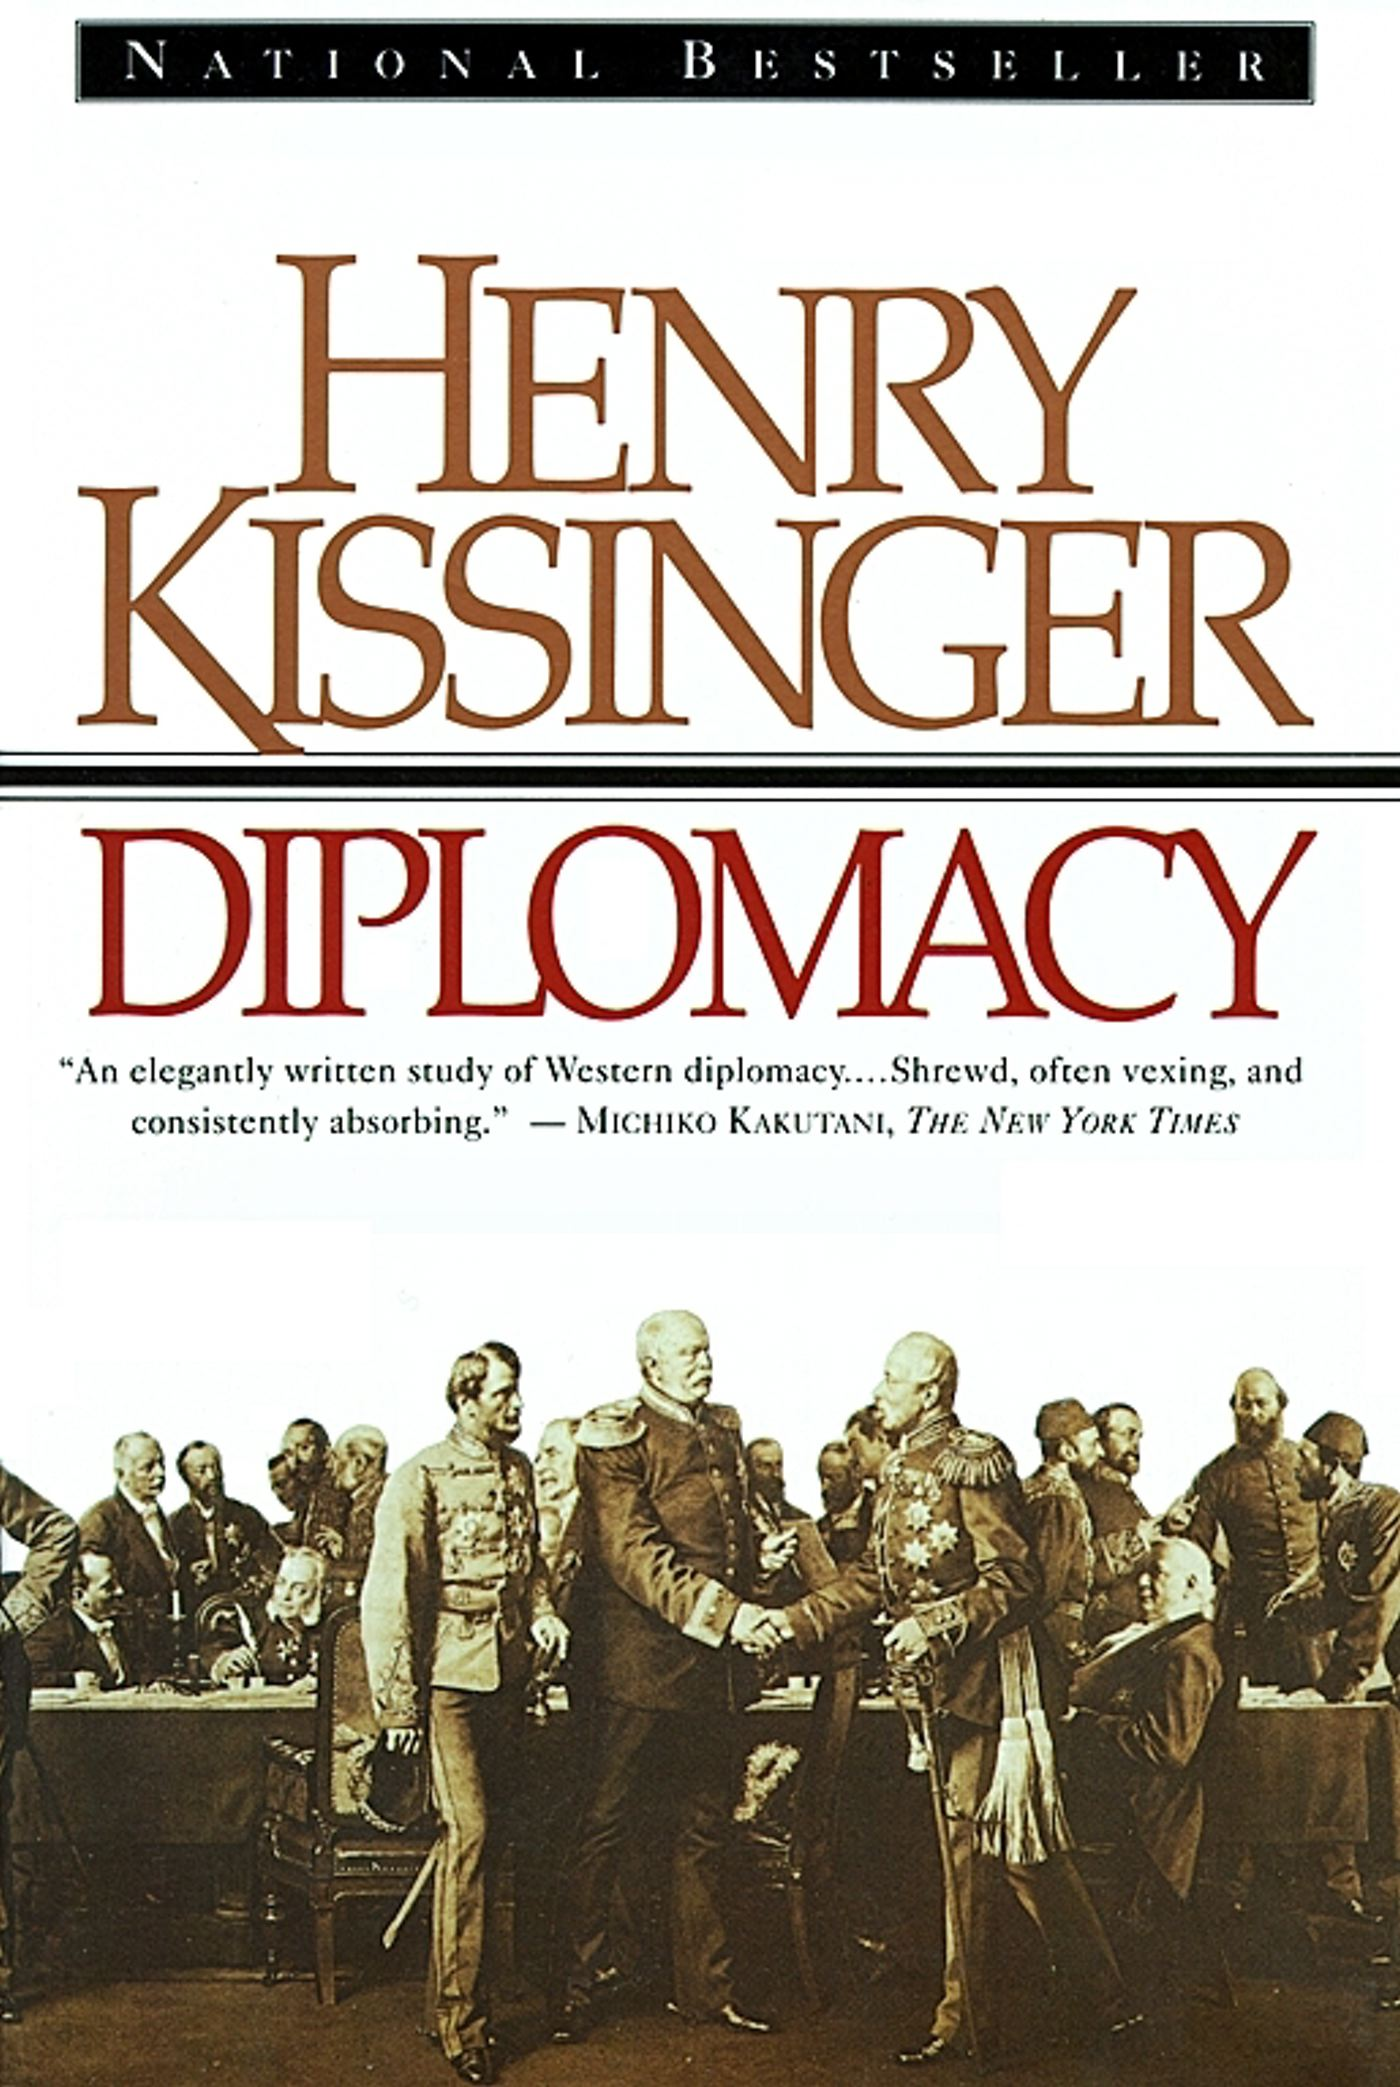 Diplomacy  Book by Henry Kissinger  Official Publisher Page  Simon  Schuster